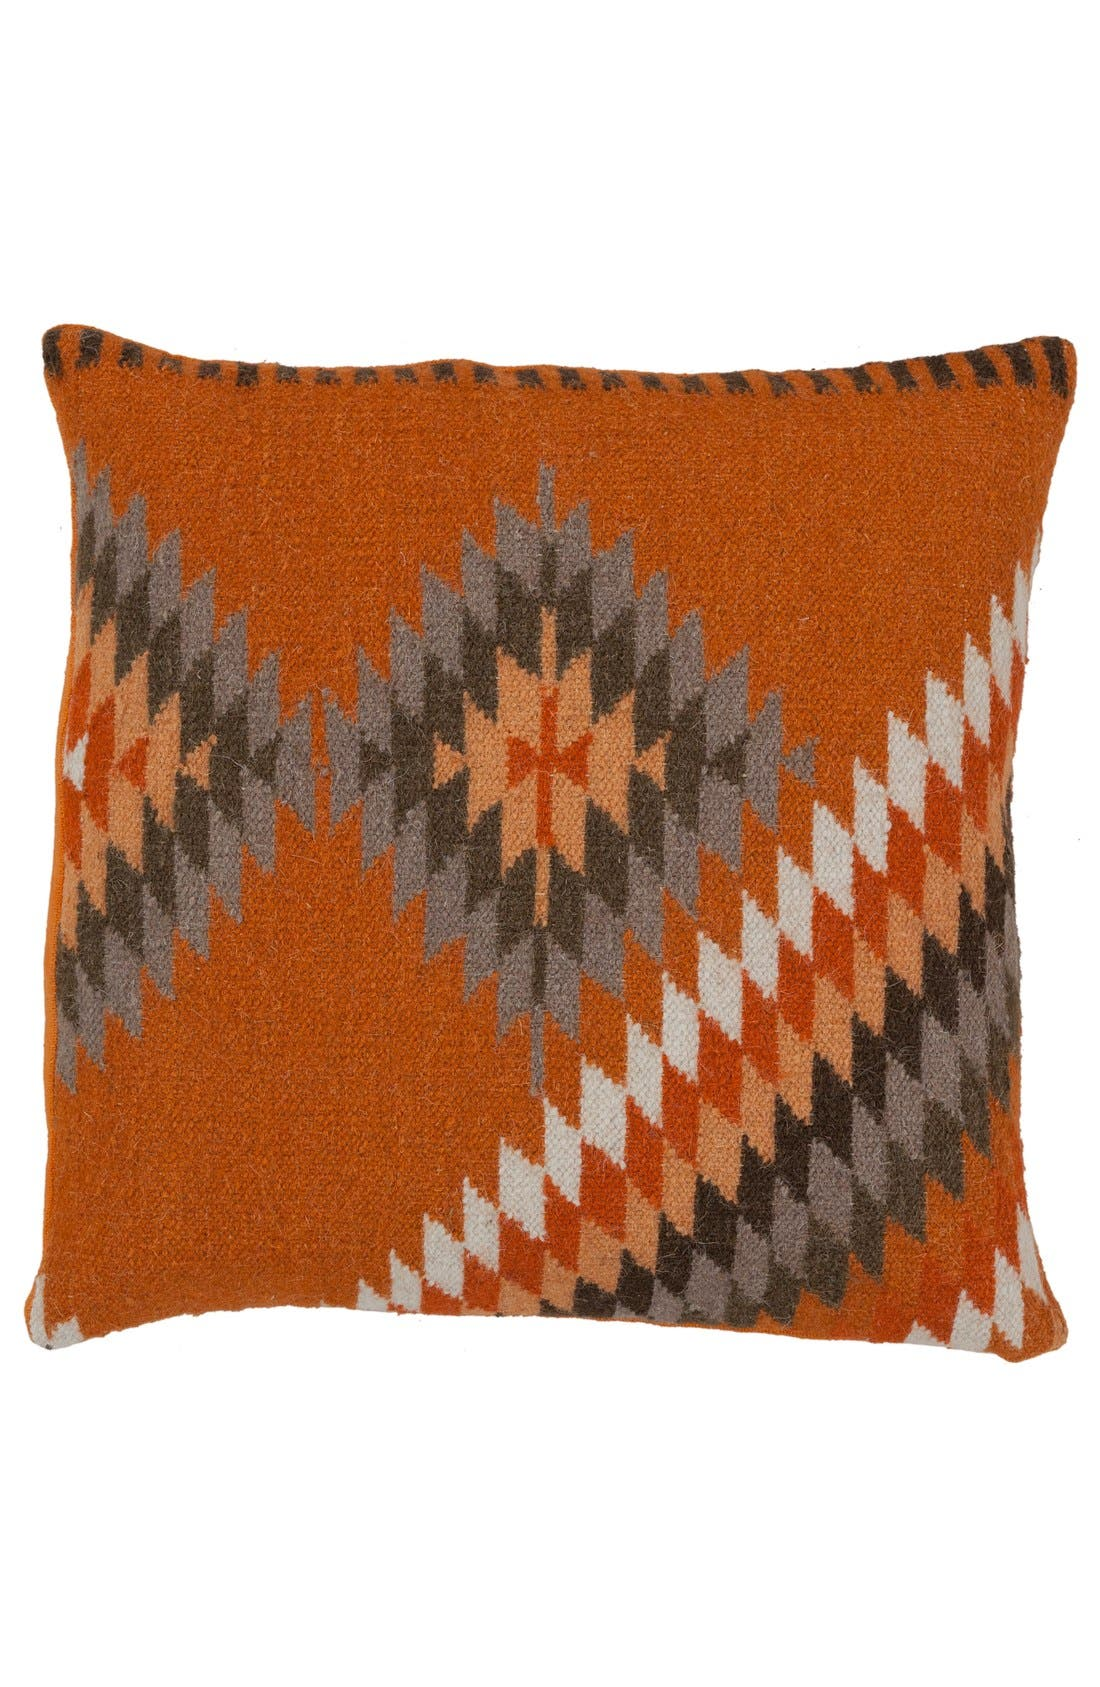 Alternate Image 1 Selected - Surya Home 'Kilim' Wool Accent Pillow